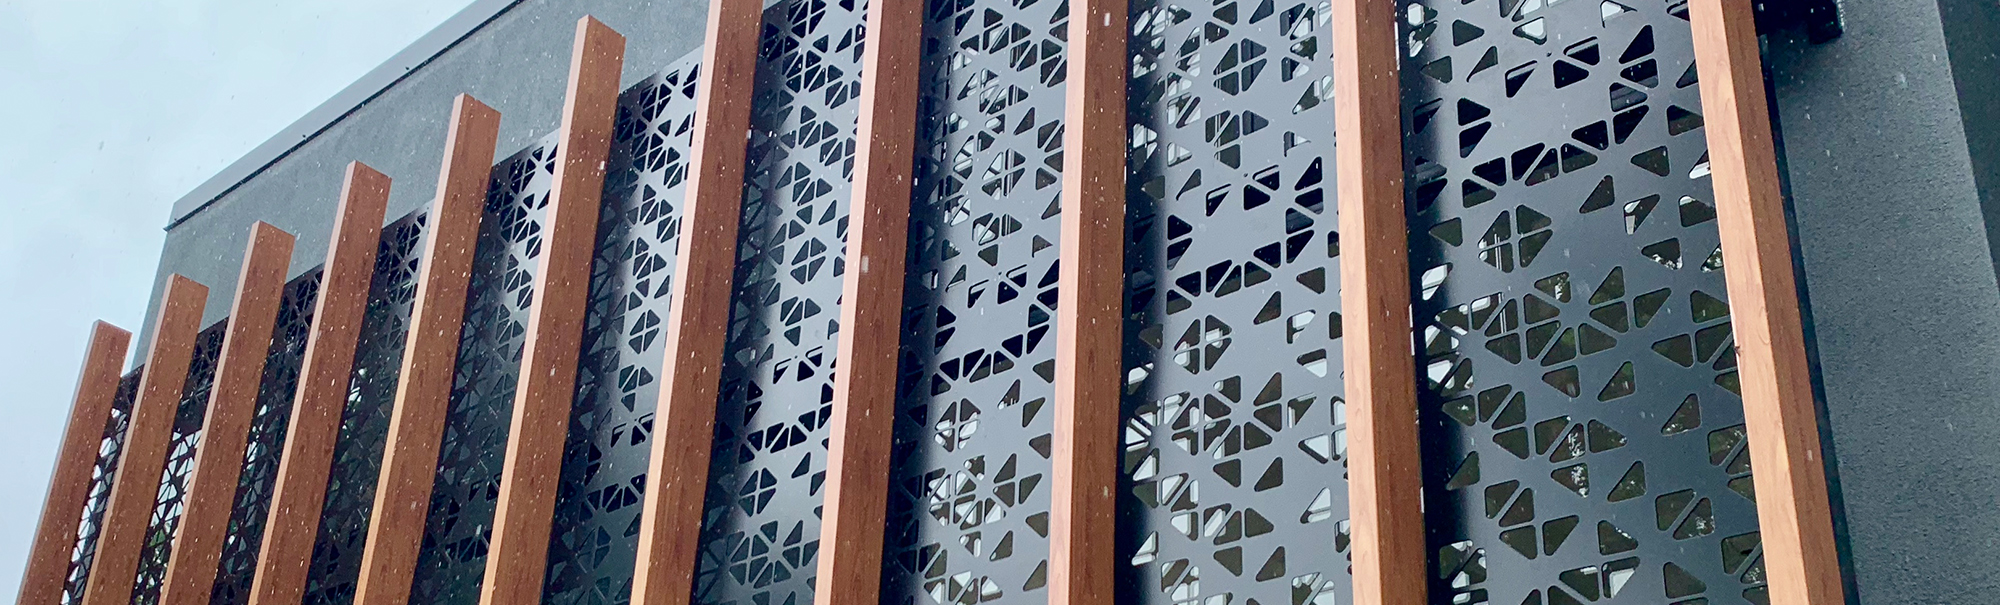 Aluminium Fencing and Screens